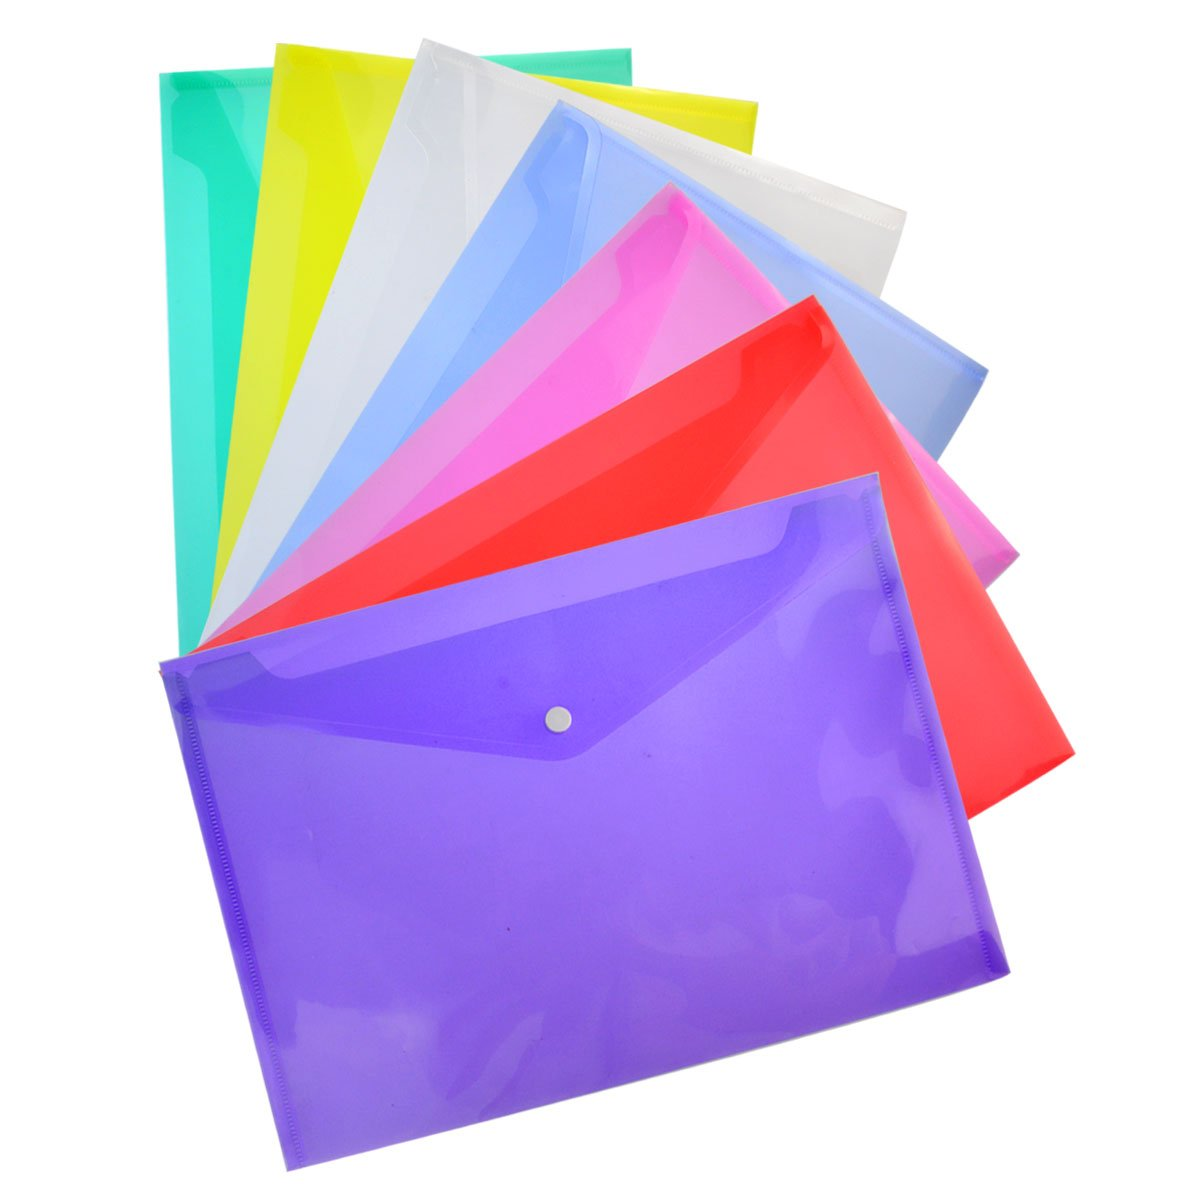 35 Packs Transparent Poly Envelope, Bantoye A4 Document Folder with Snap Button Closure, 7 Assorted Colors